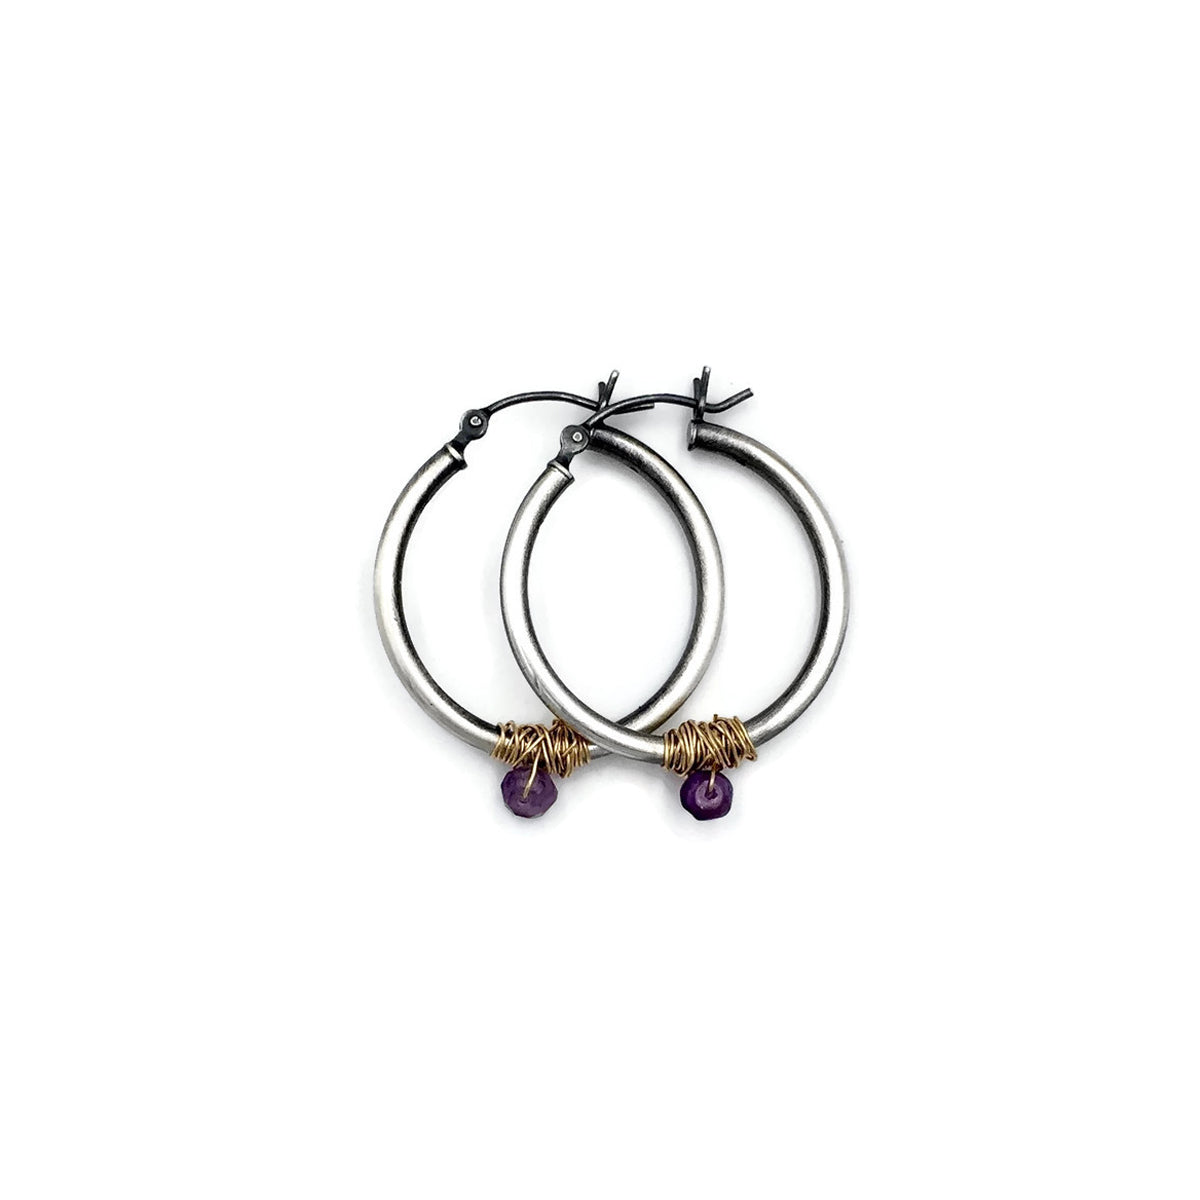 Amethyst Mixed Metal Hoops